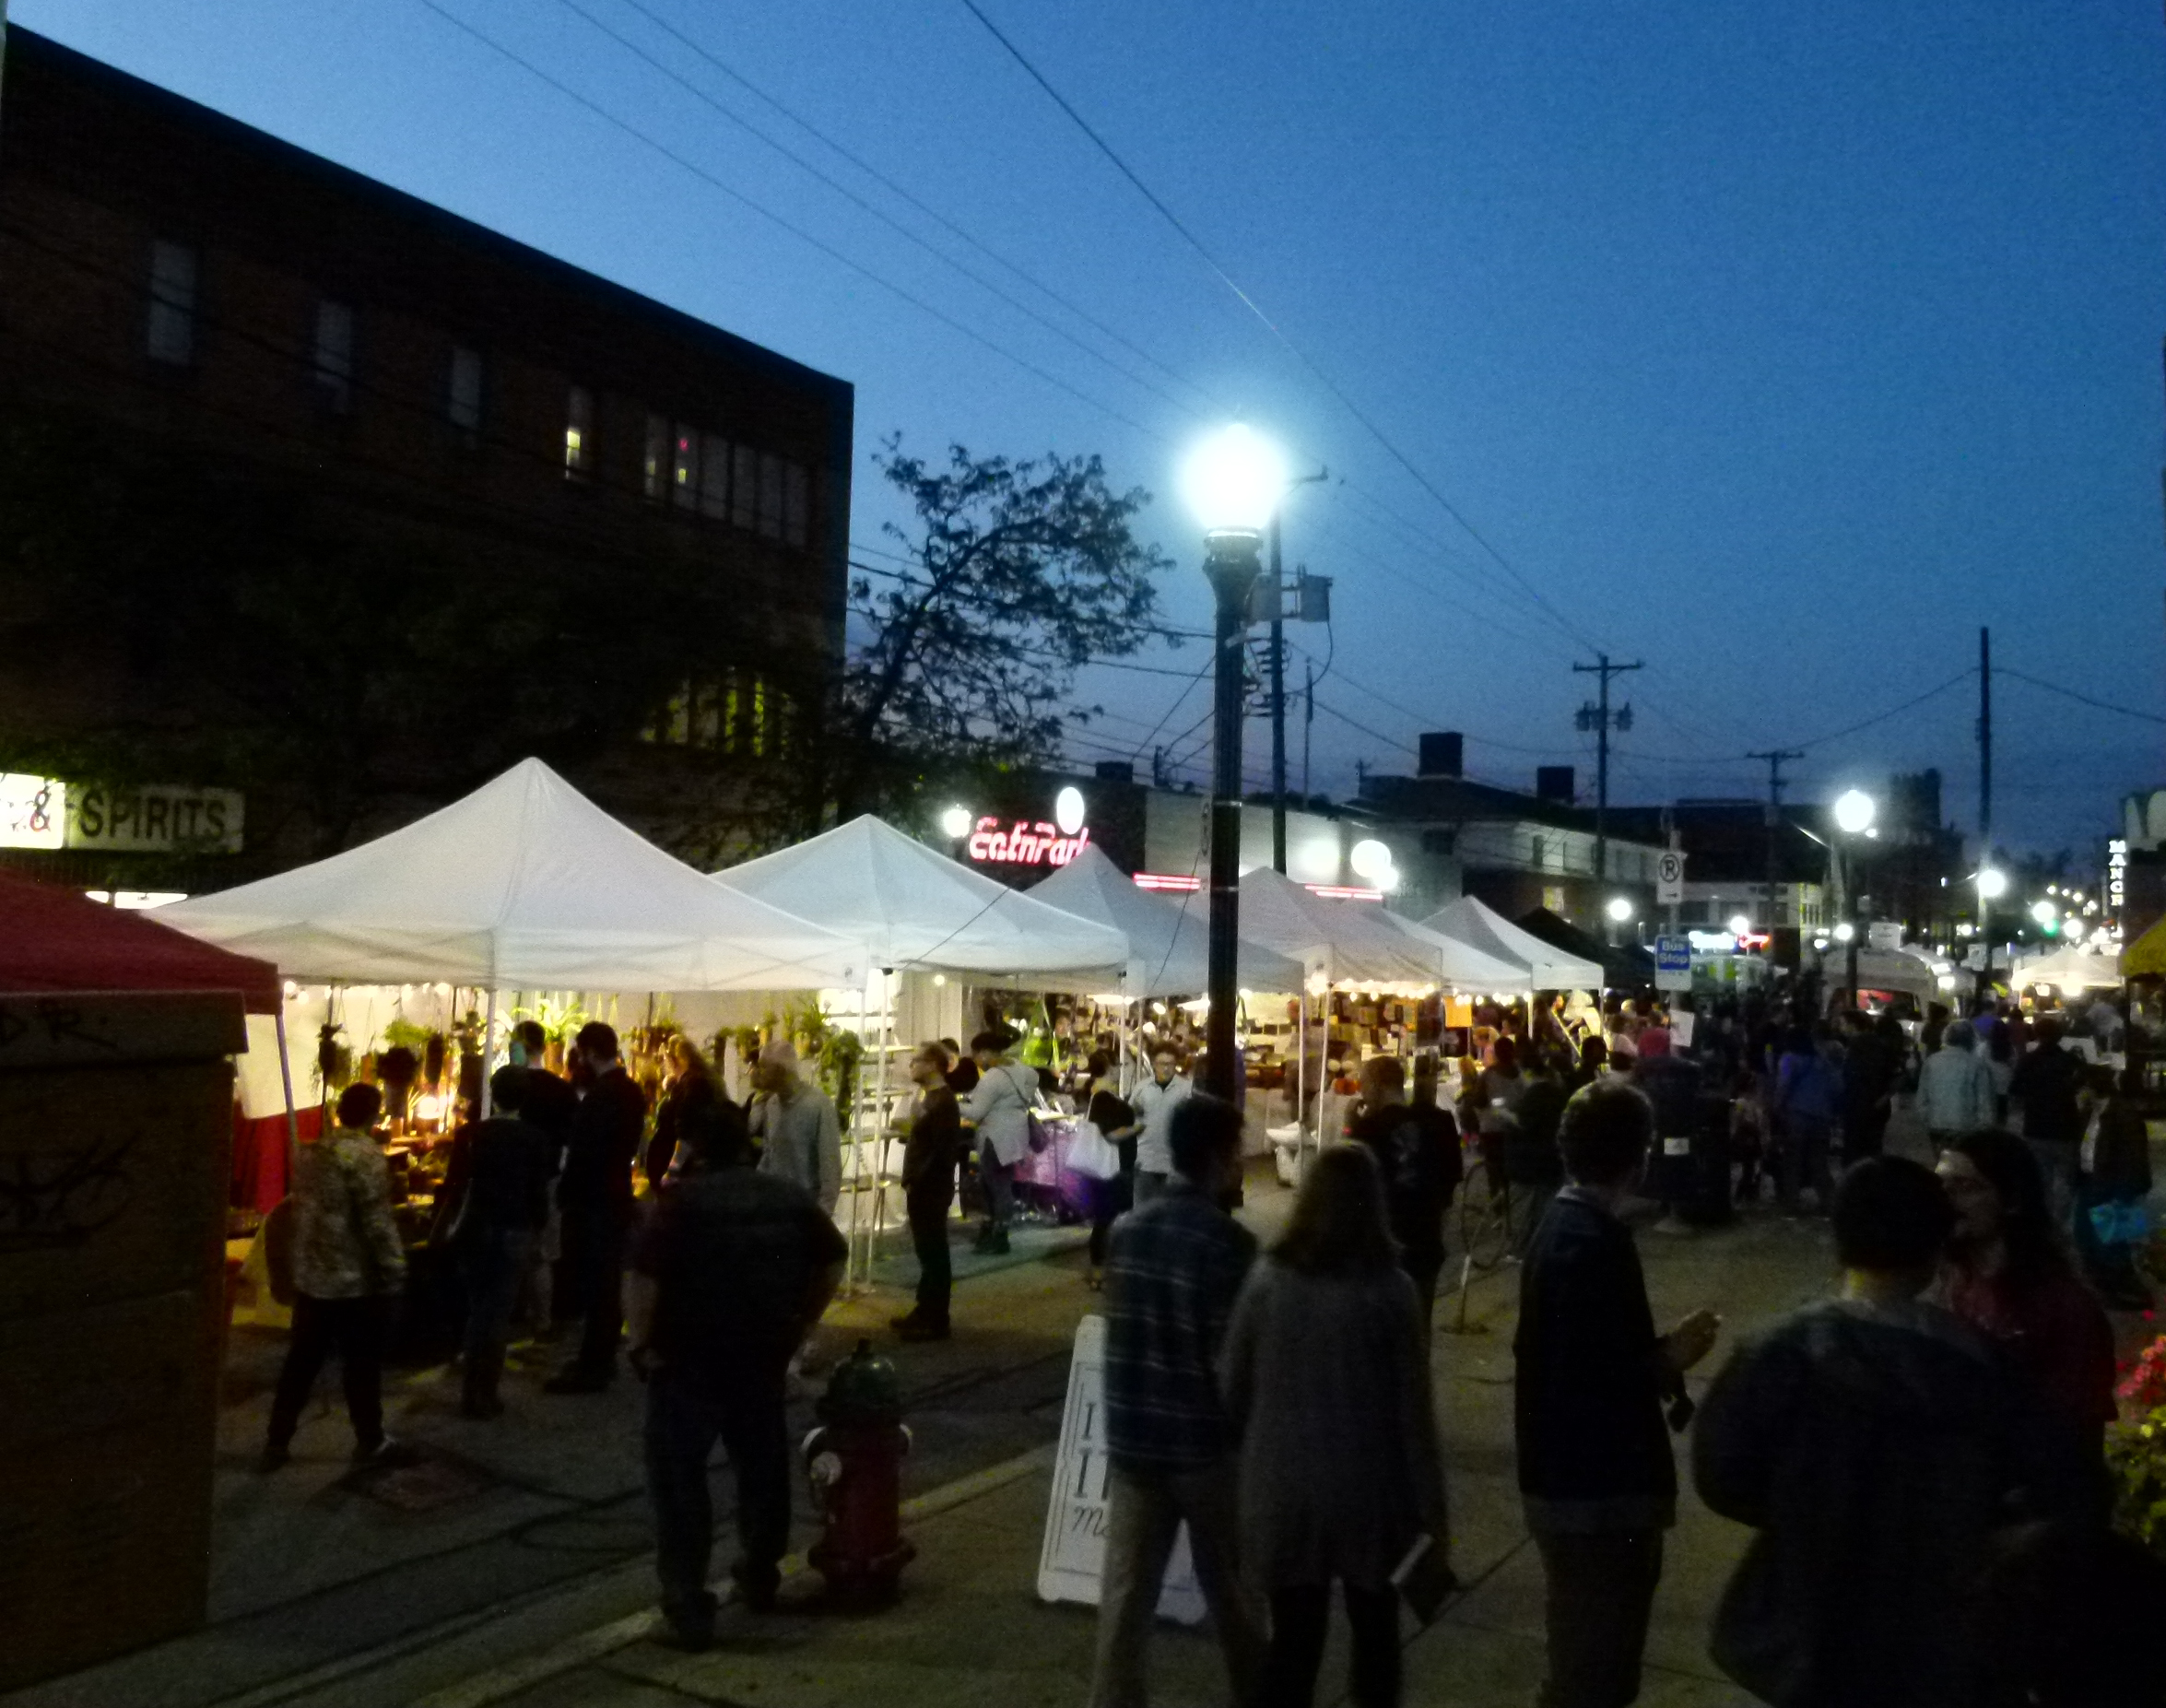 Lighted booths line the Murray Avenue promenade.